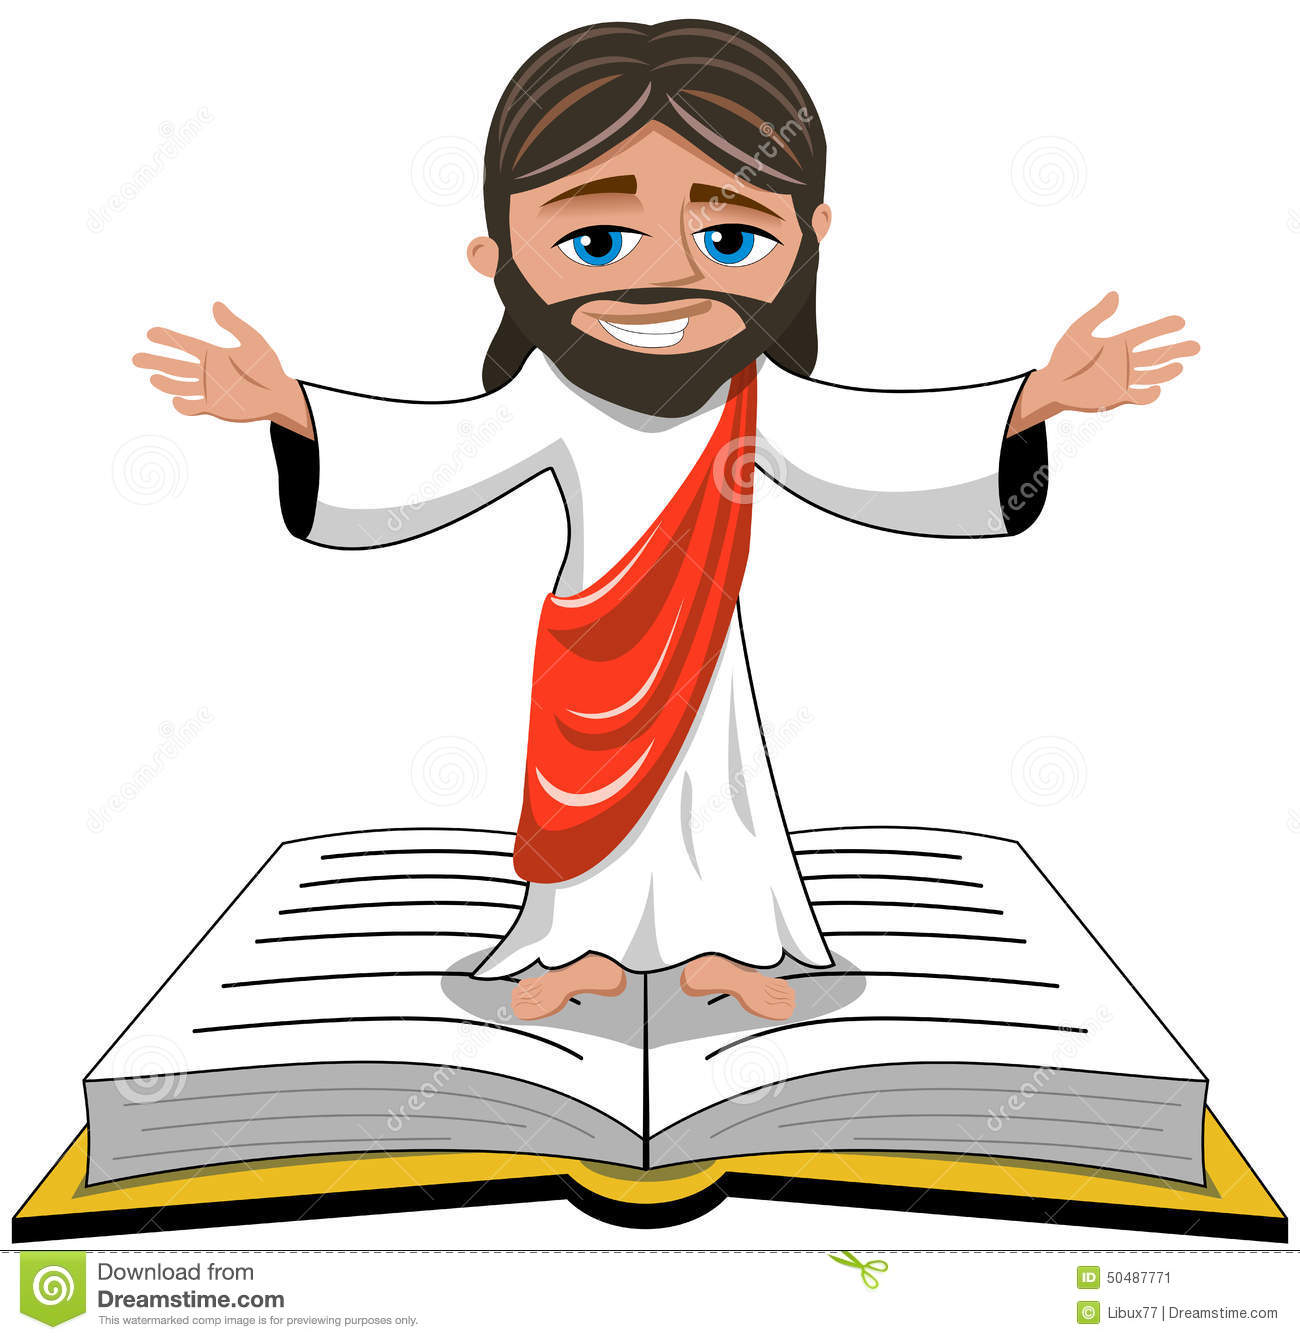 Jesus Christ Face Cartoon Icon Stock Vector - Image: 66681870